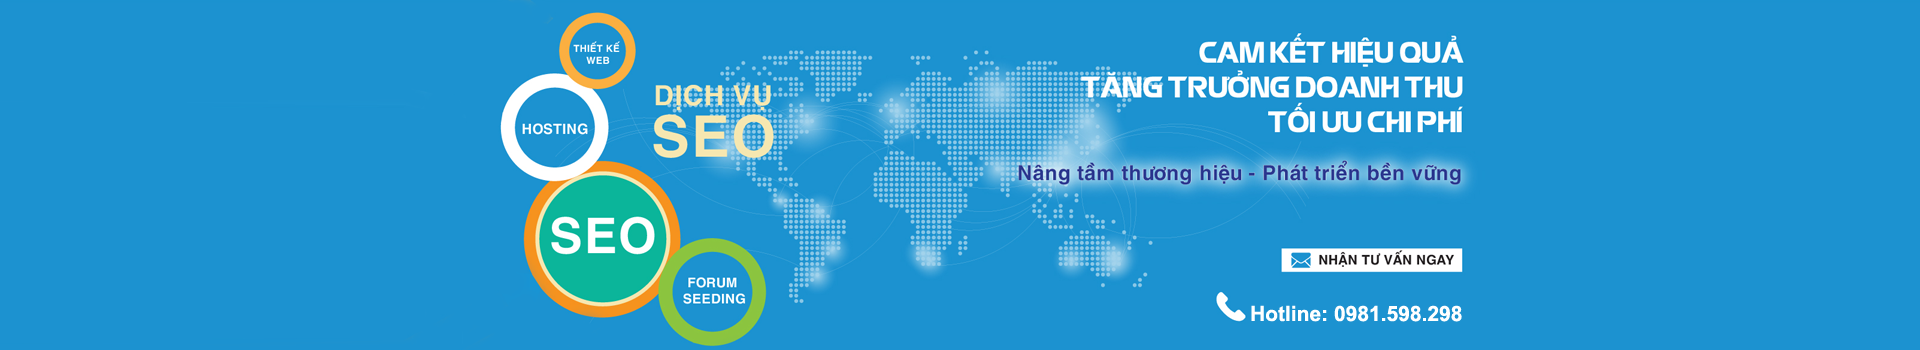 Banner-thiet-ke-website-01